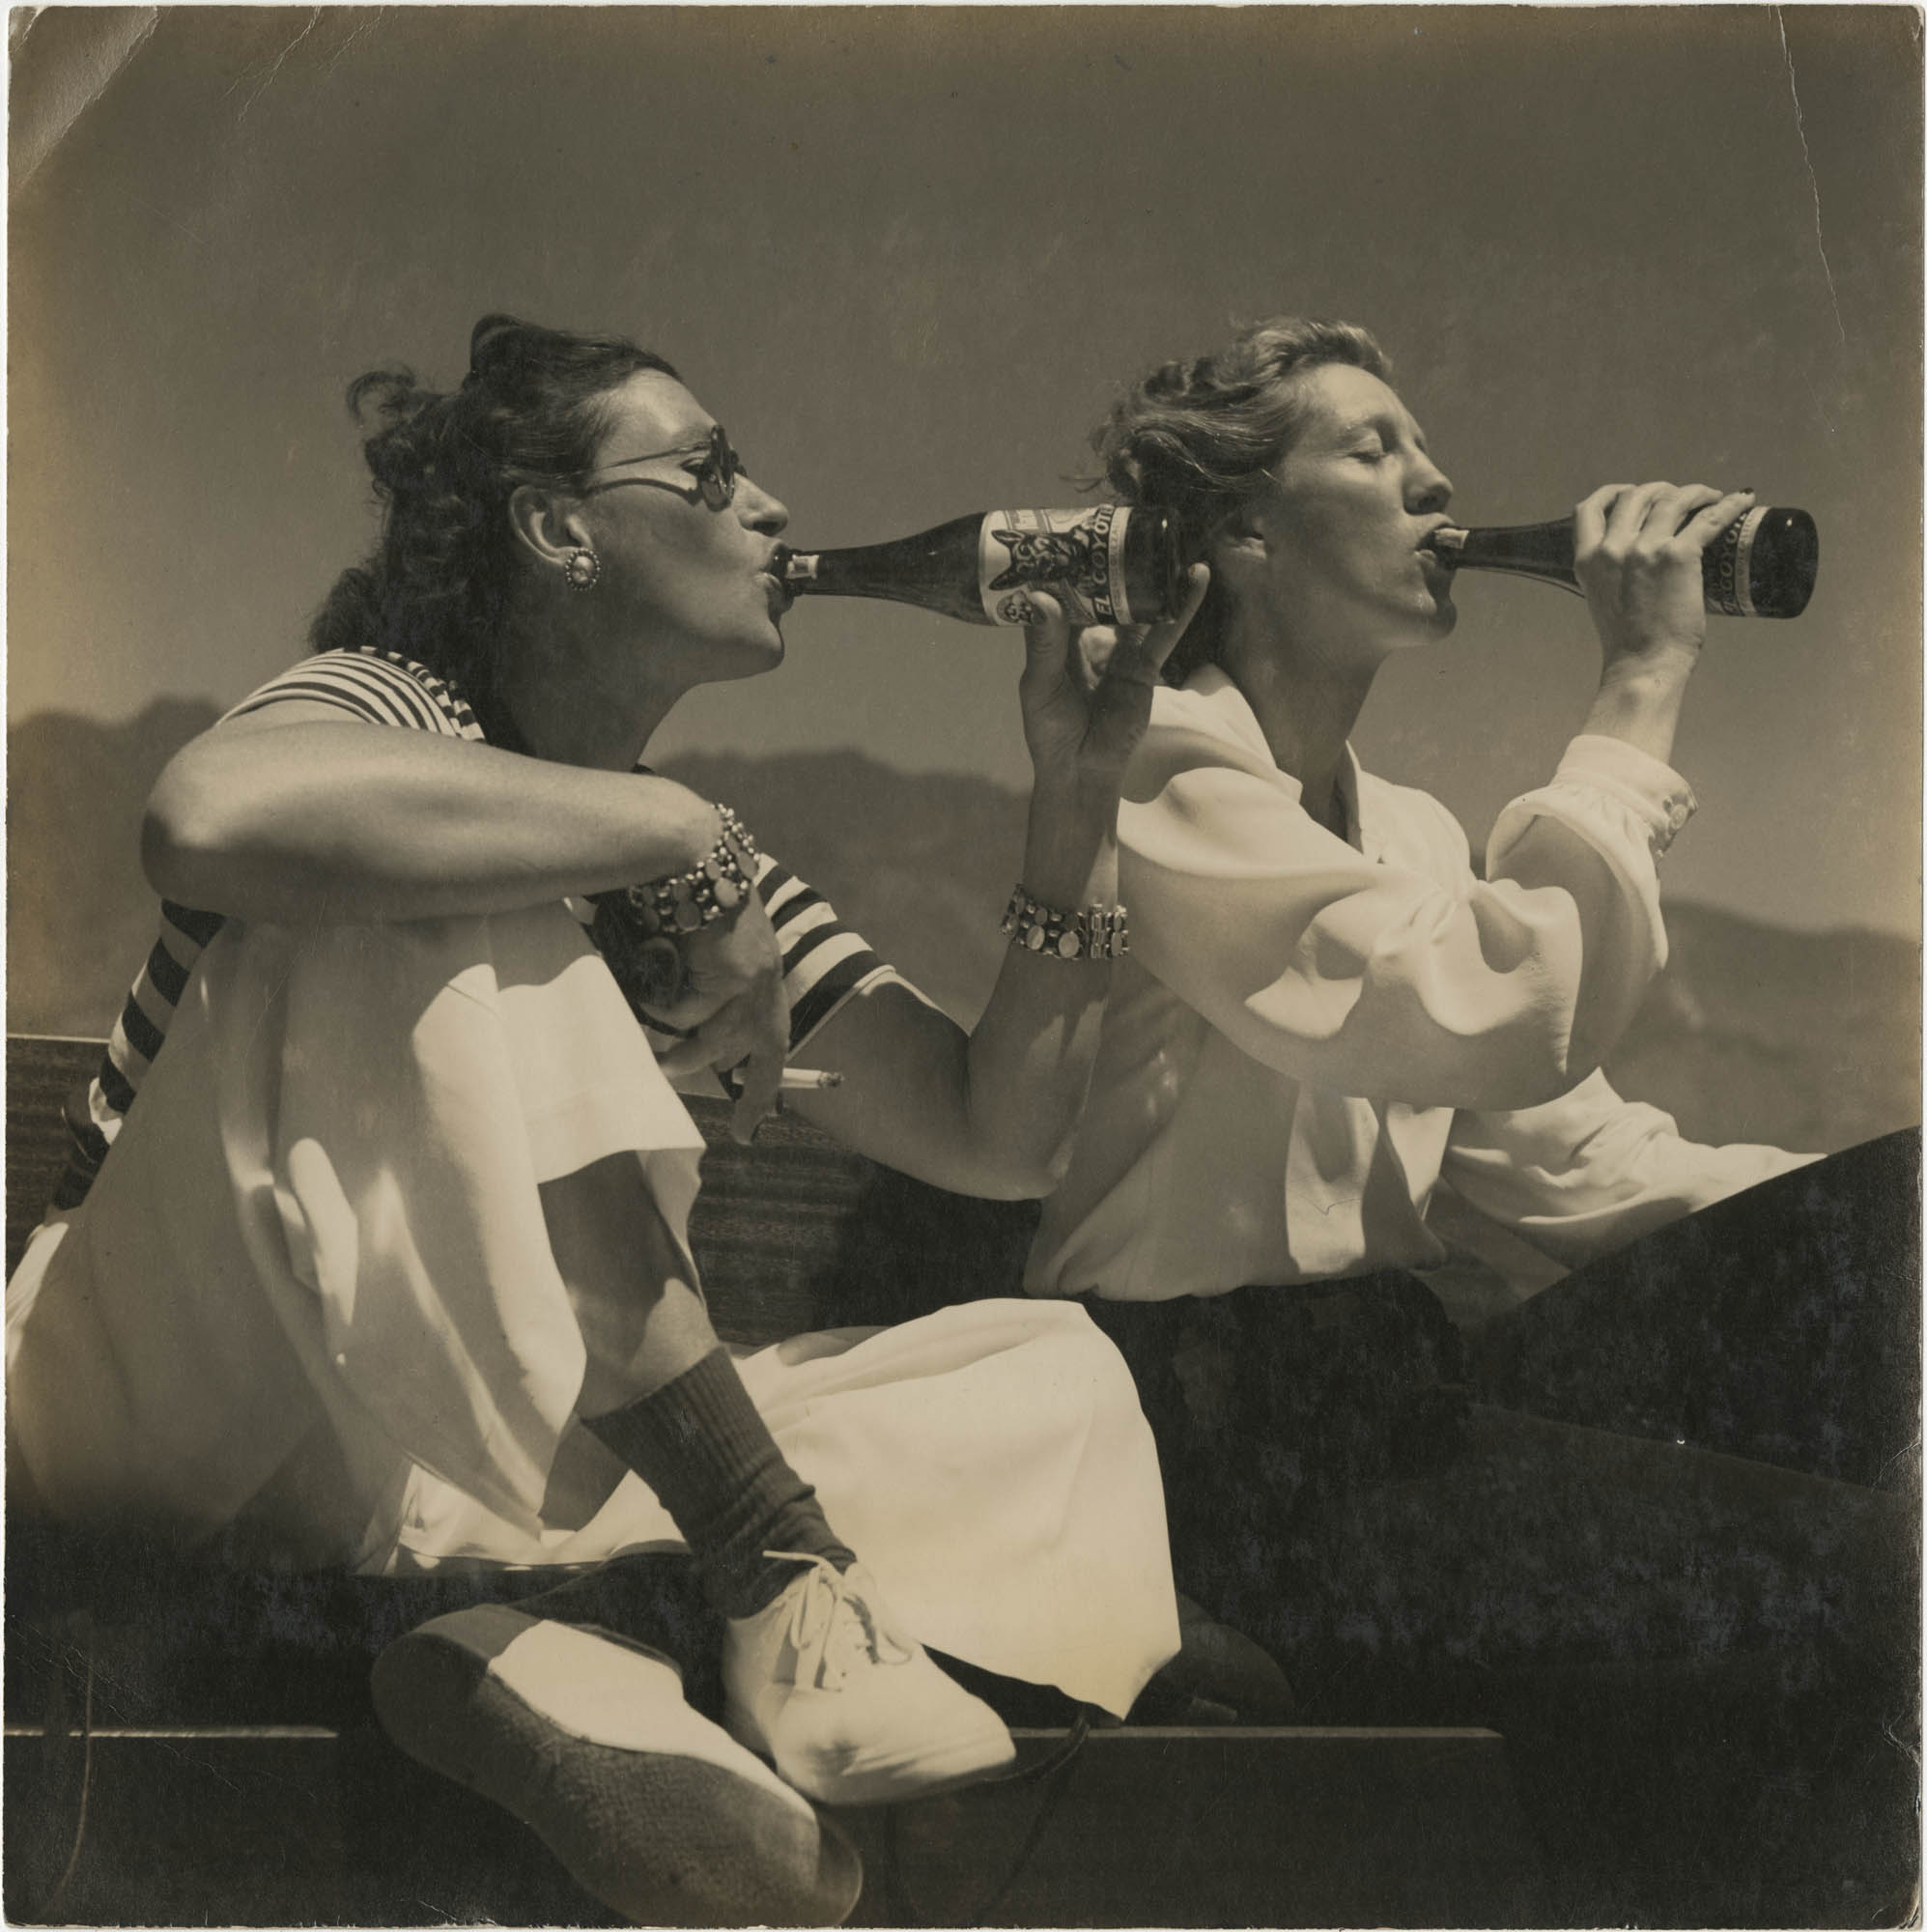 Photograph of Gertrude Legendre and Toni Frissell